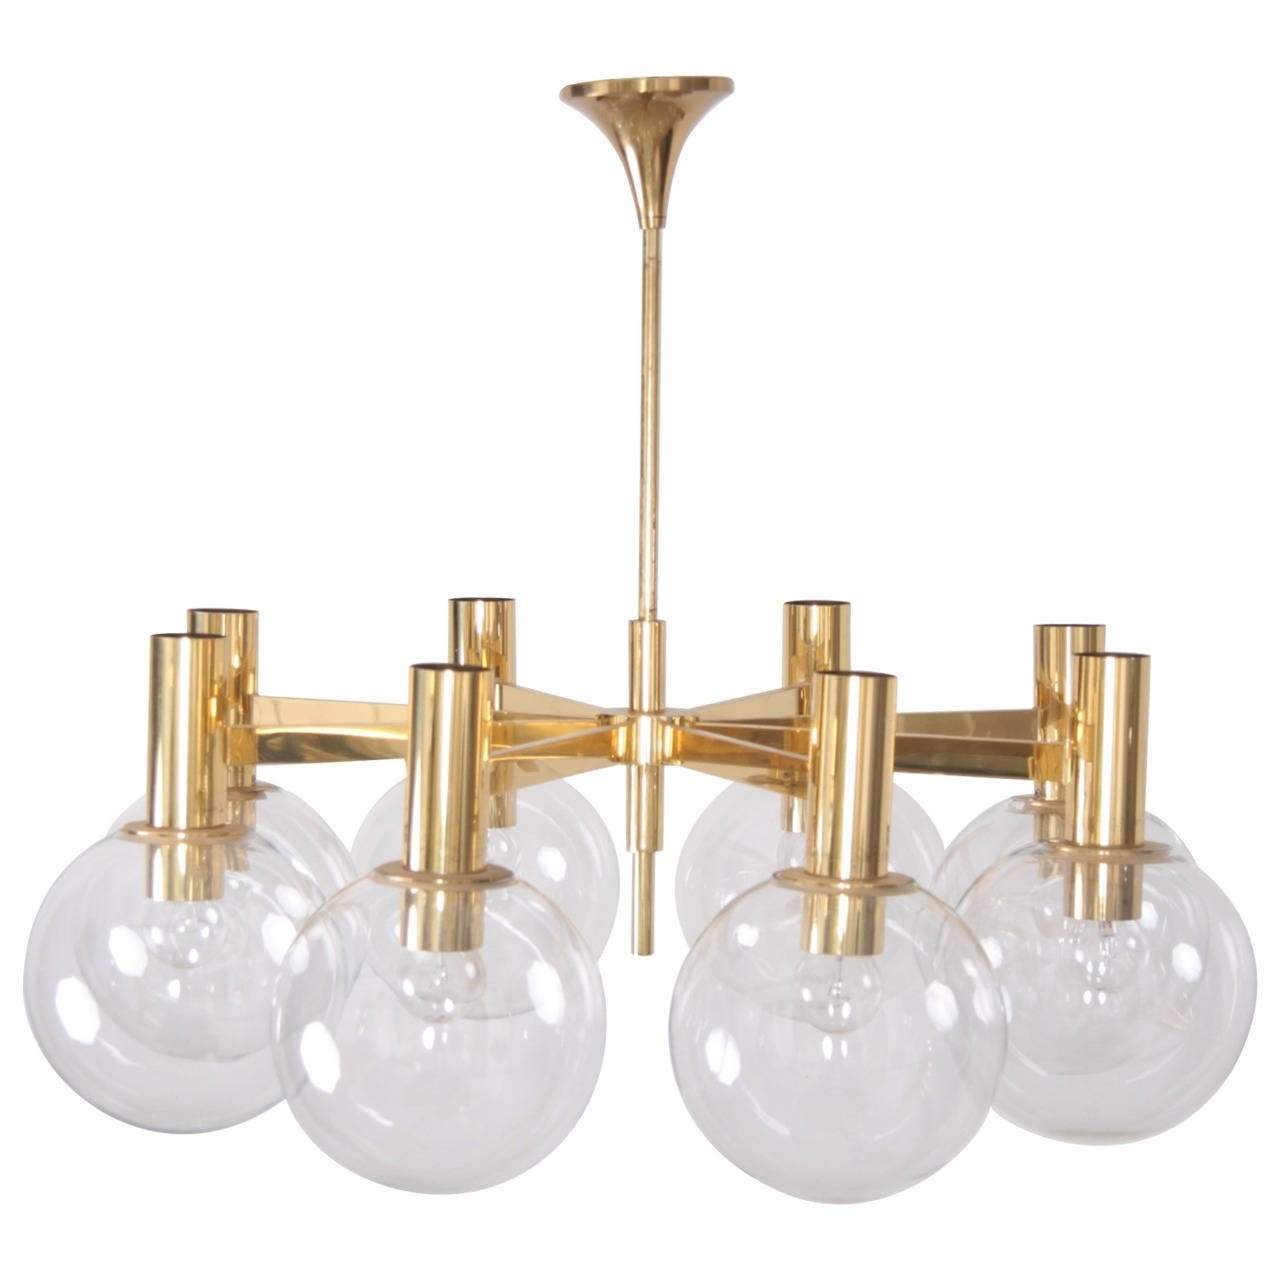 Extra Large Brass Chandelier With Eight Armsott International Within Popular Large Brass Chandelier (Gallery 10 of 15)